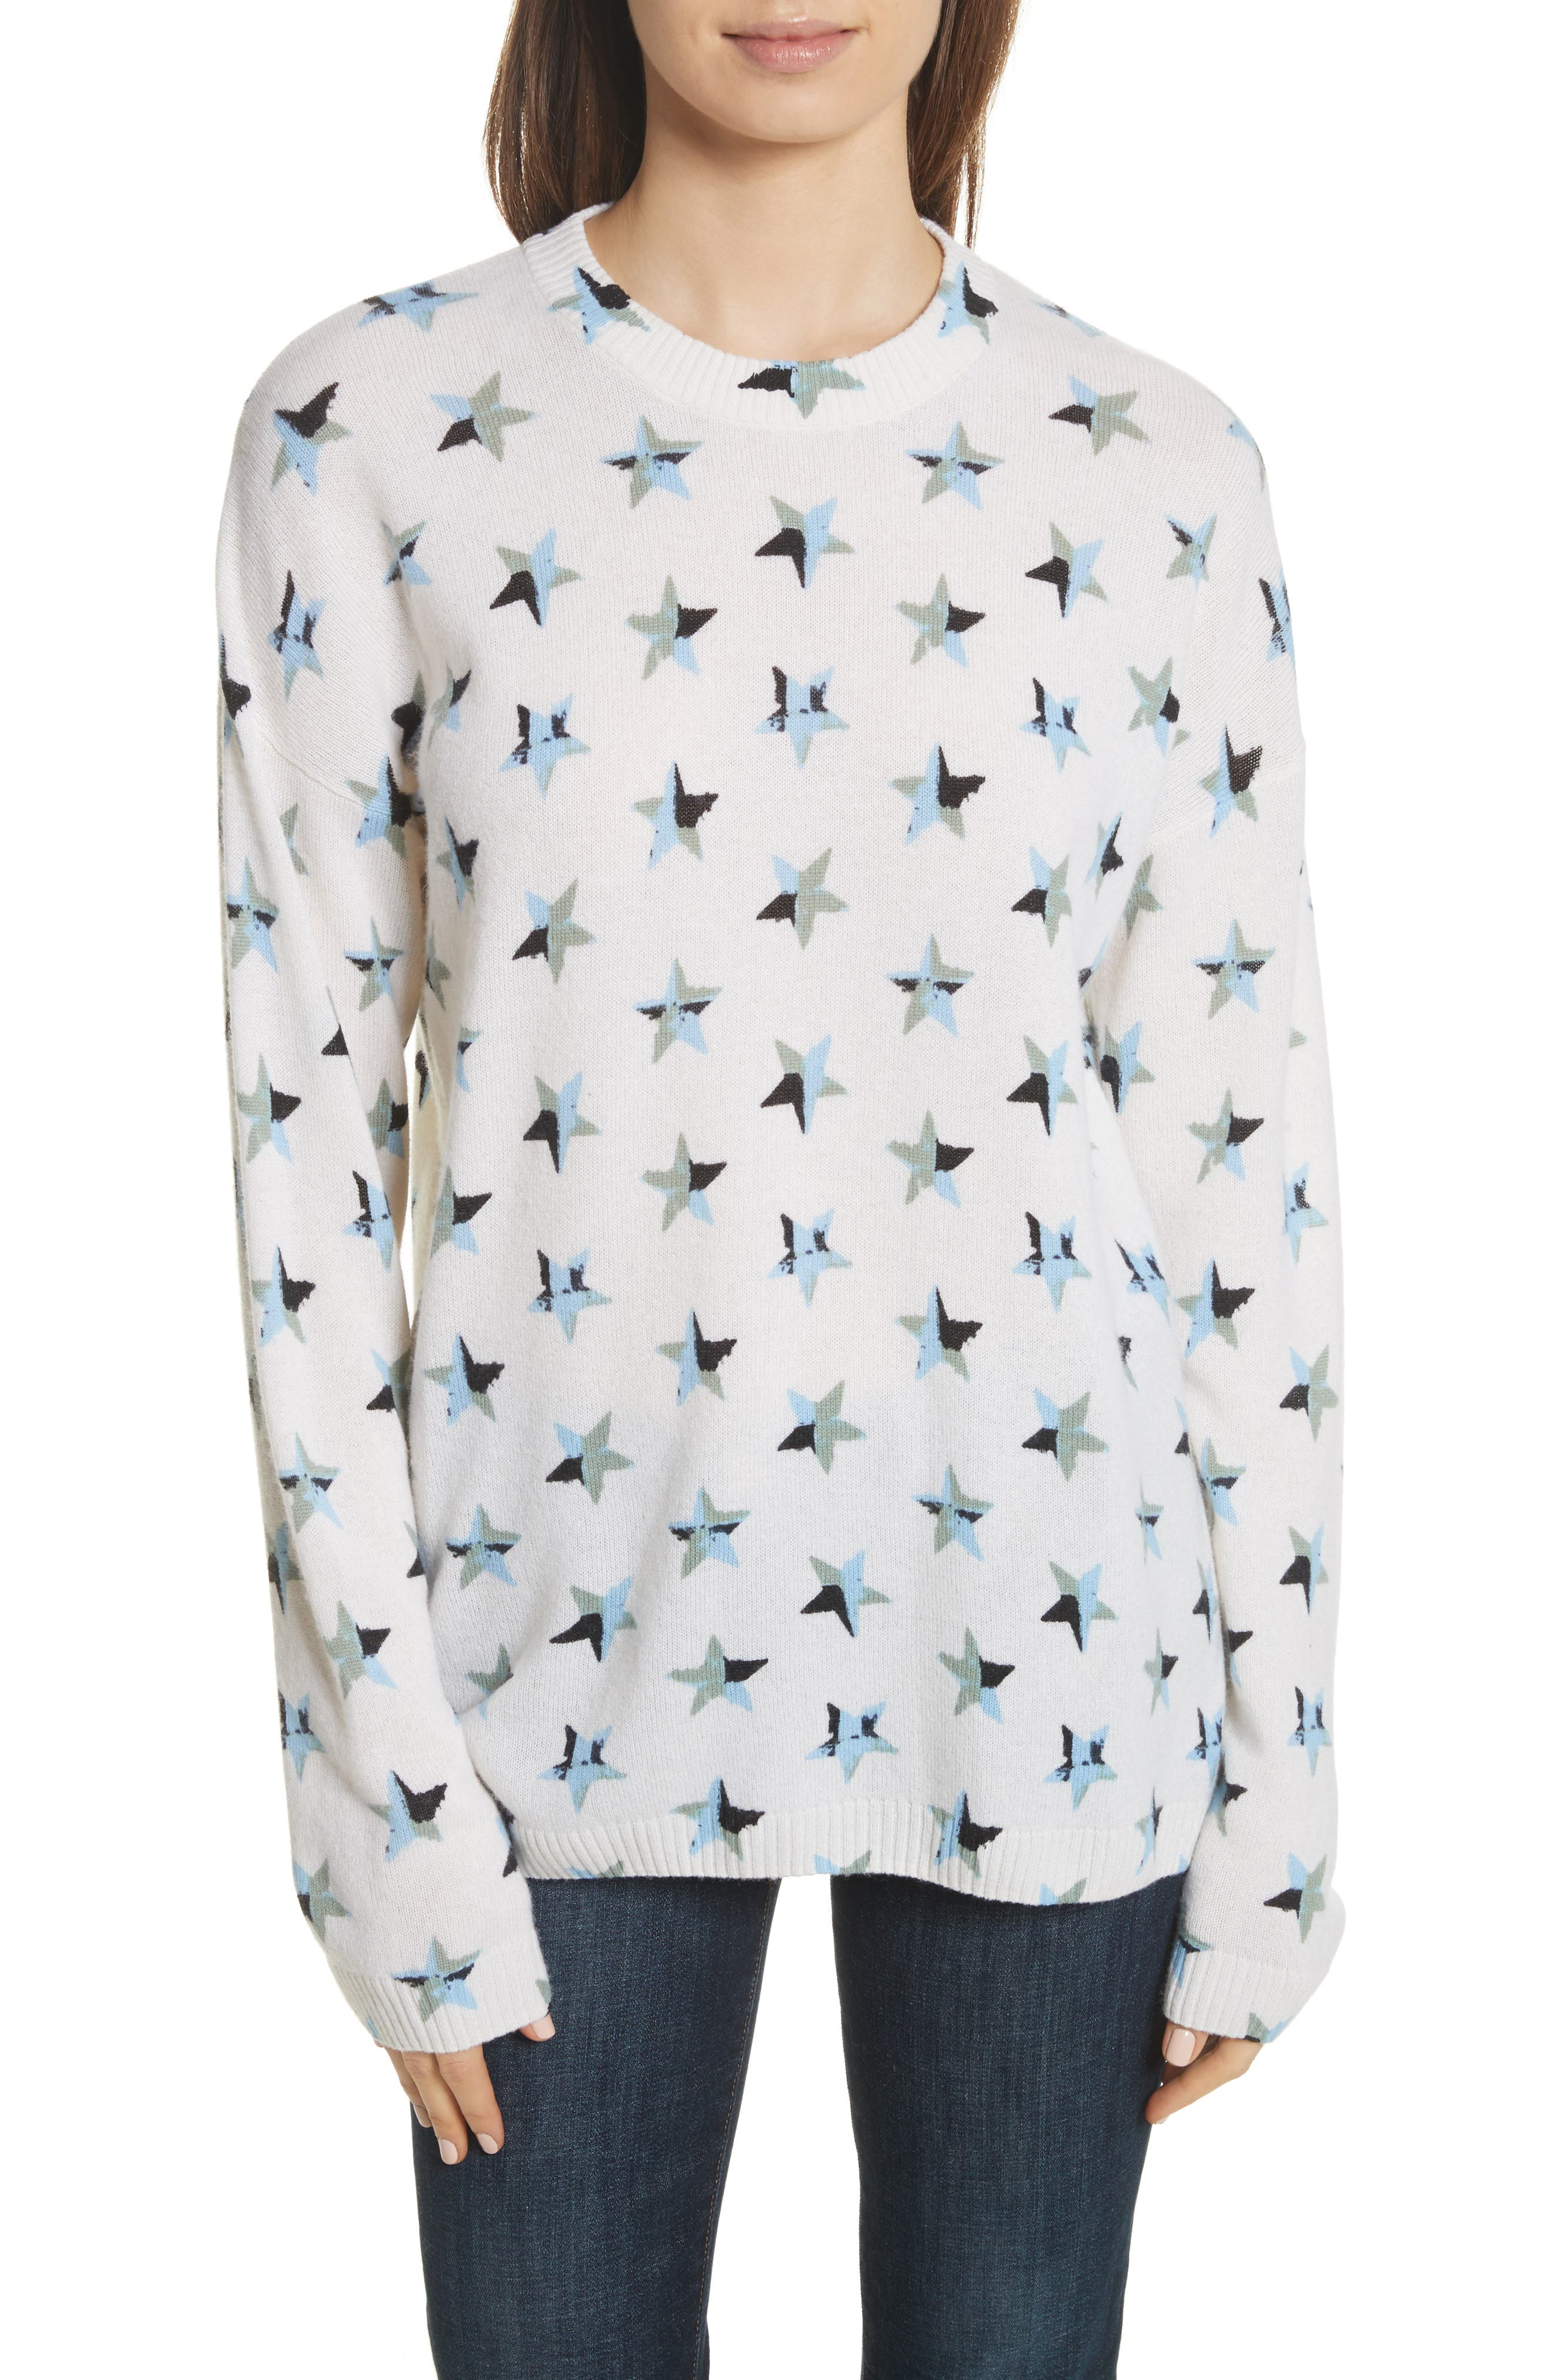 Bryce Star Print Cashmere Sweater,                             Main thumbnail 1, color,                             Ivory Multi